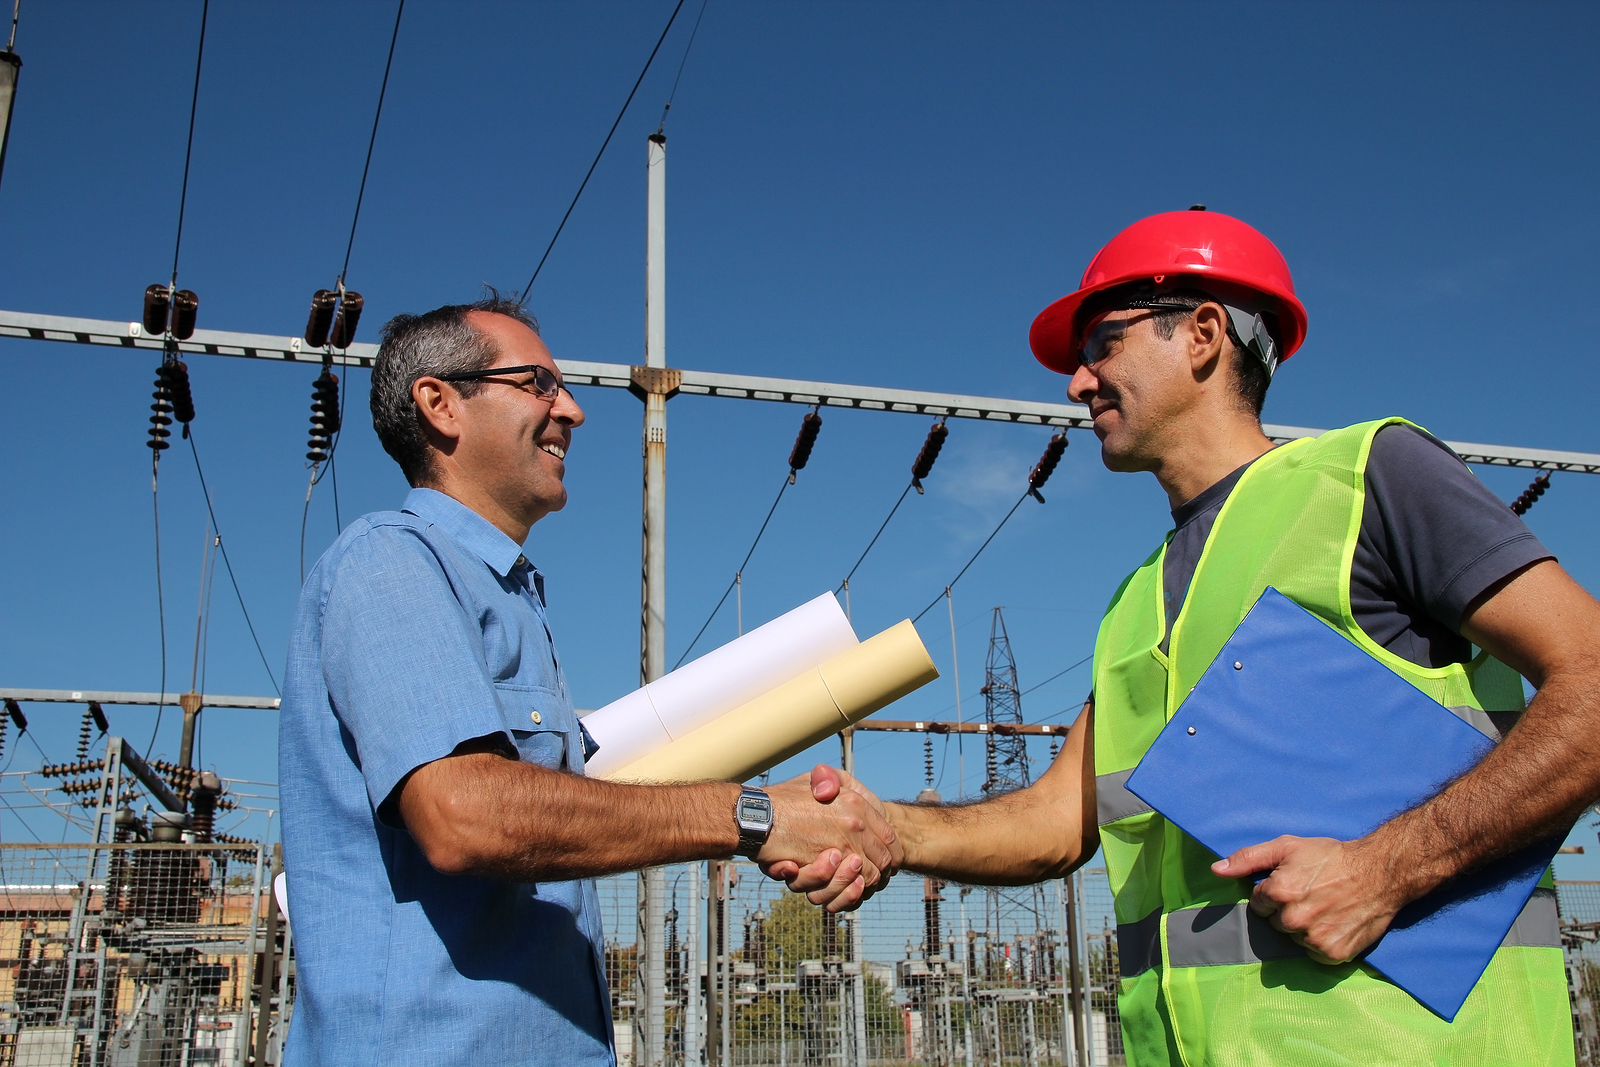 Smiling workers with blueprints and clipboard in meeting at electrical substation. Selective focus.